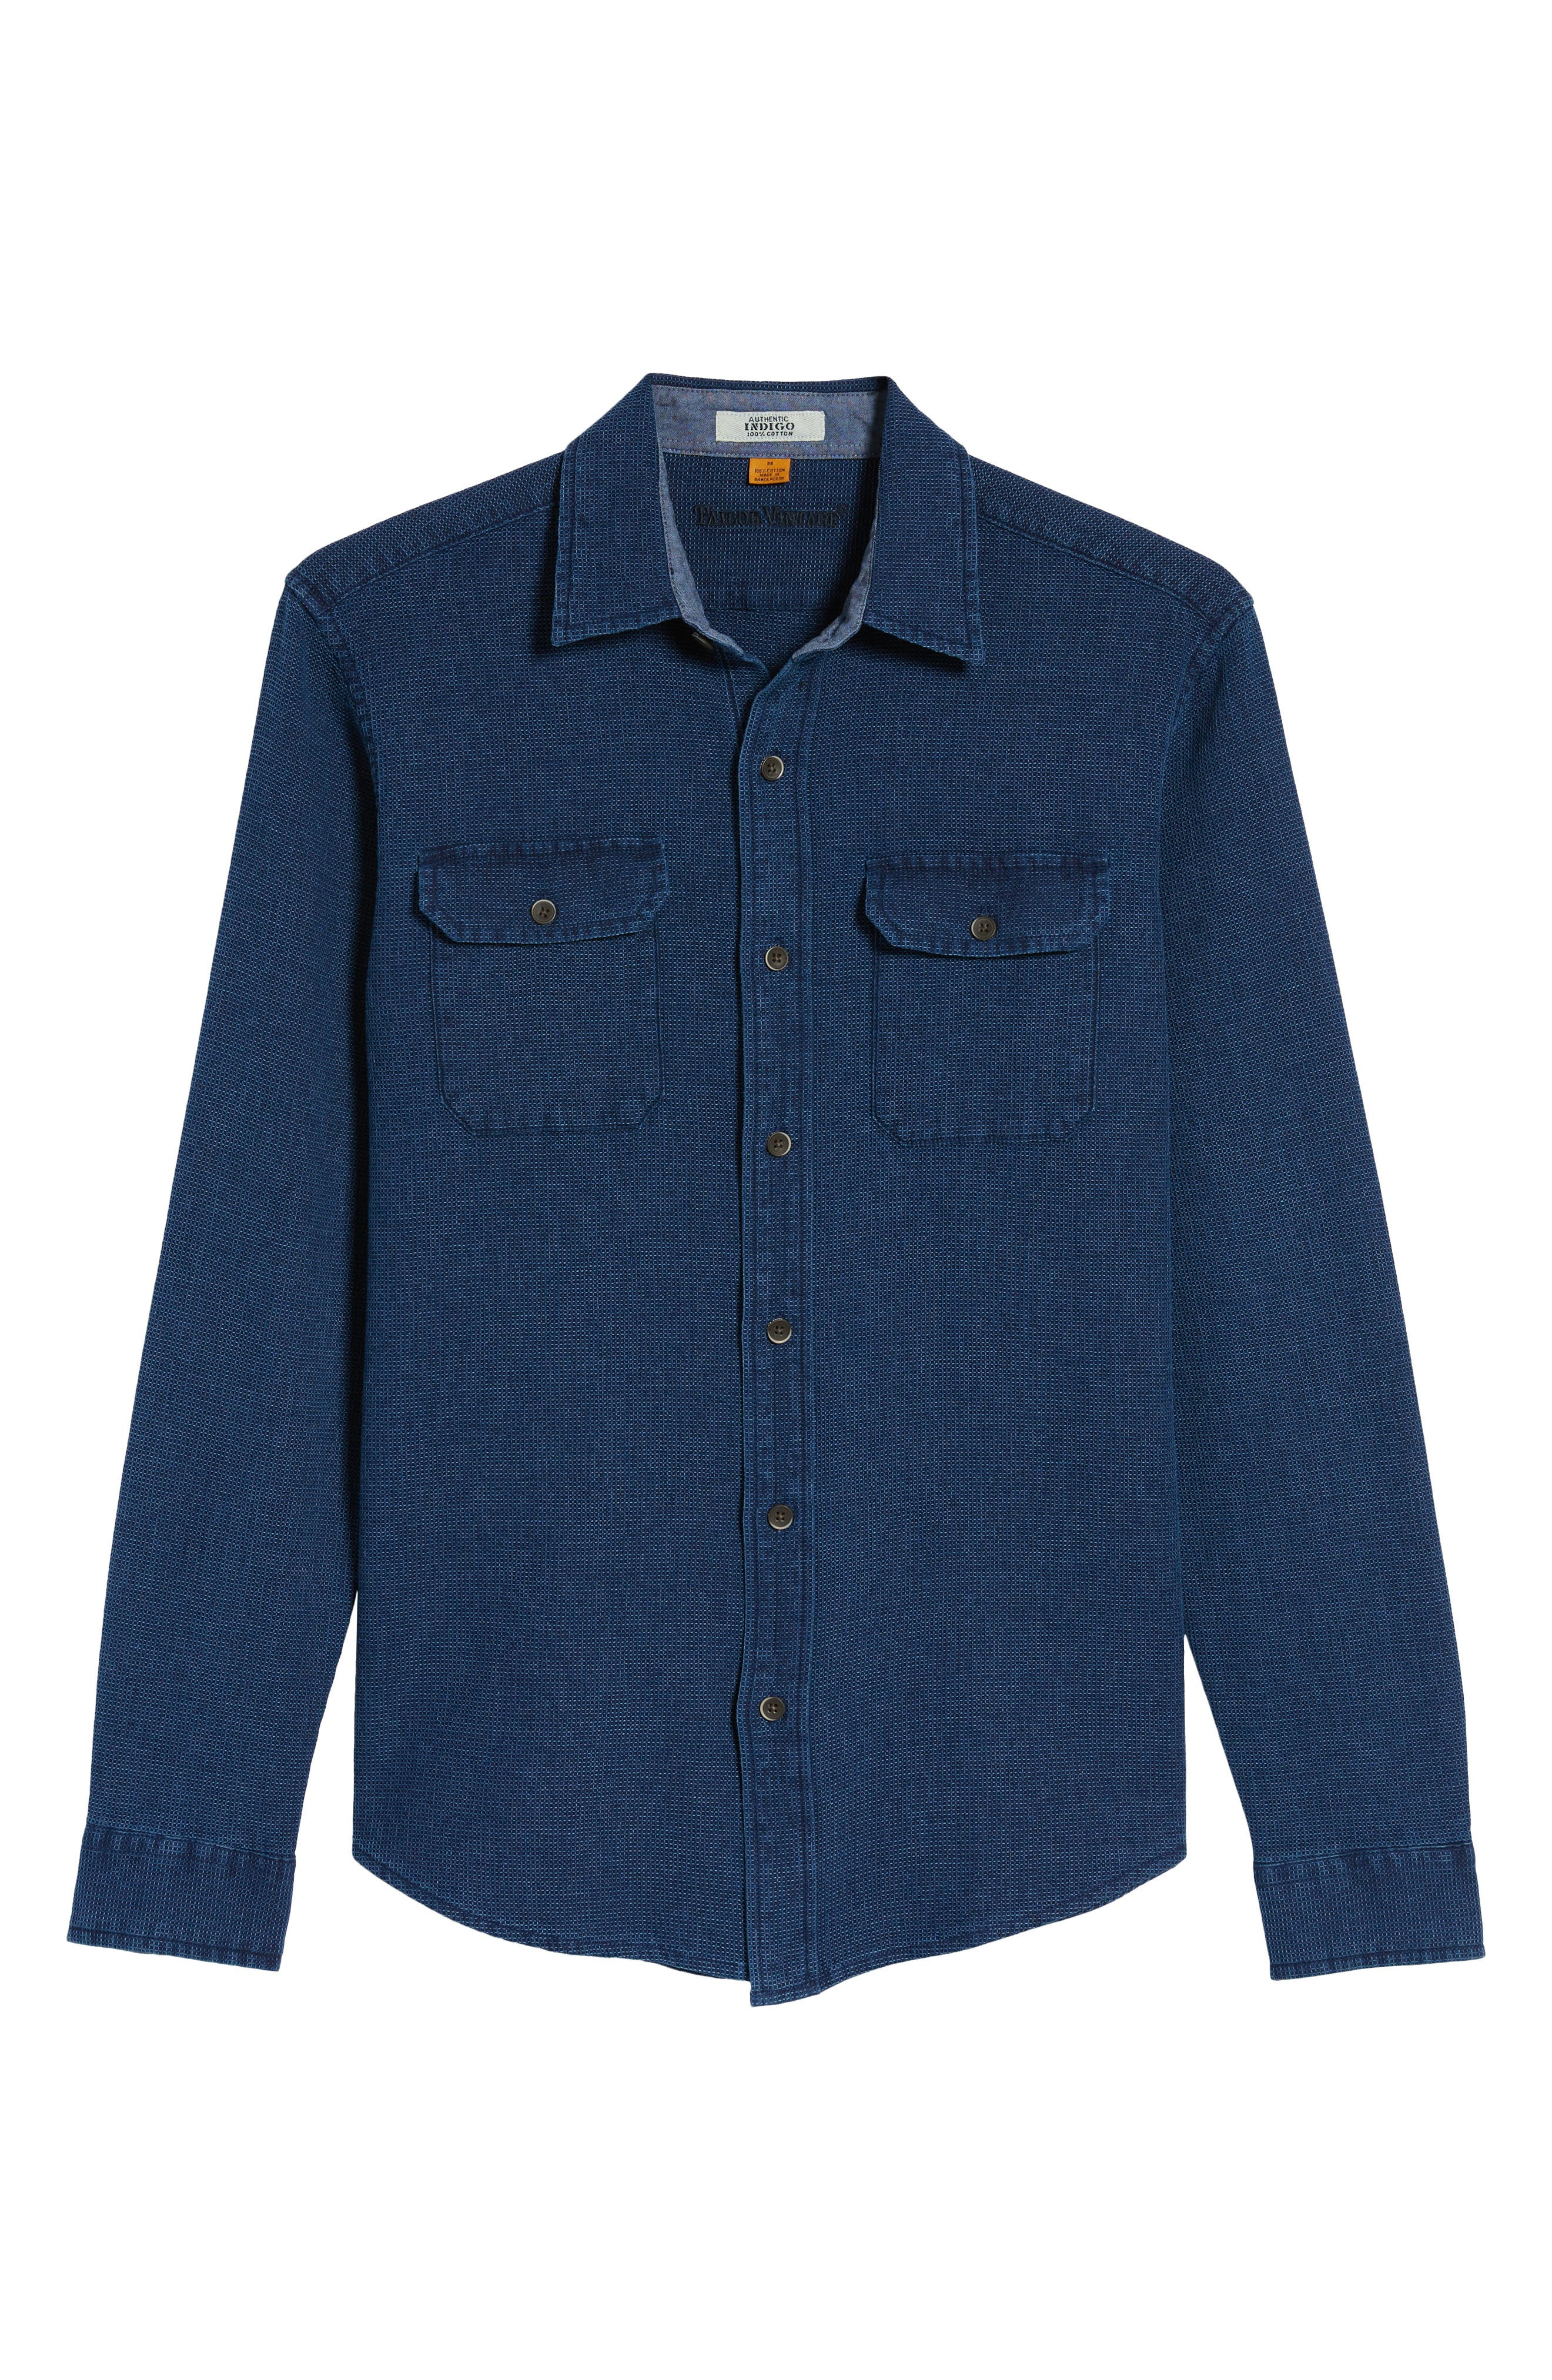 Regular Fit Indigo Waffle Sport Shirt,                             Alternate thumbnail 6, color,                             478